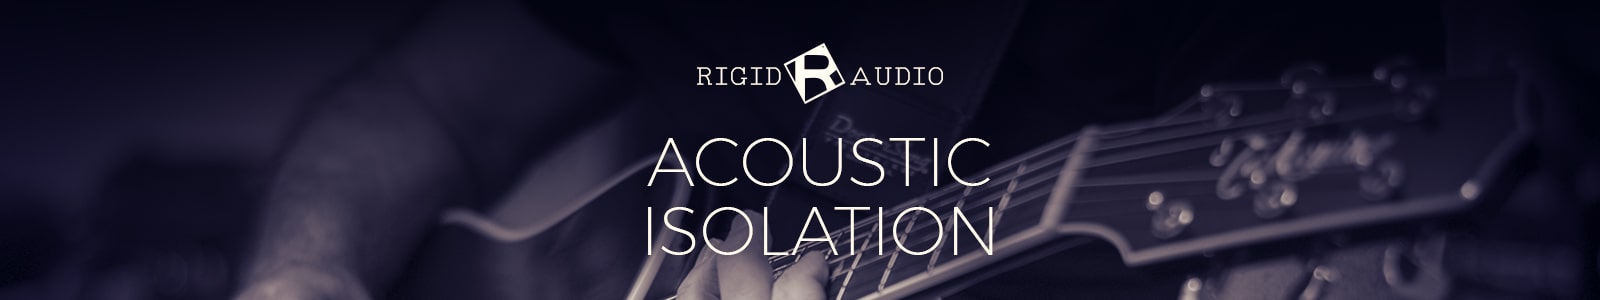 acoustic isolation by rigid audio